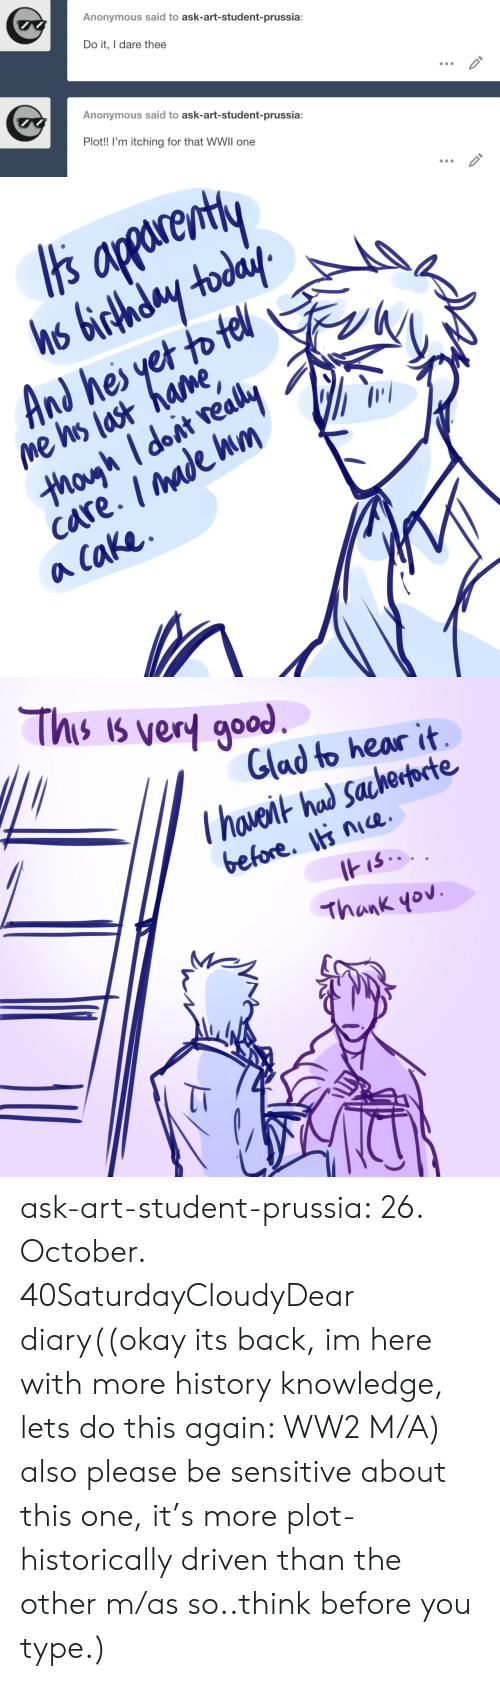 Birthday, Target, and Tumblr: Anonymous said to ask-art-student-prussia:  Do it, I dare thee  Anonymous said to ask-art-student-prussia:  Plot!! I'm itching for that WWII one   apparenty  hs birthday today  And hes yet to tell  me his last hame,  thoyh Idoit really  care. /made hm  a Cake   This is very good  Glad to hear it  Thaveit had Sacherporte  before. nice.  IHIS..  Thank yov ask-art-student-prussia:  26. October. 40SaturdayCloudyDear diary((okay its back, im here with more history knowledge, lets do this again: WW2 M/A) also please be sensitive about this one, it's more plot-historically driven than the other m/as so..think before you type.)